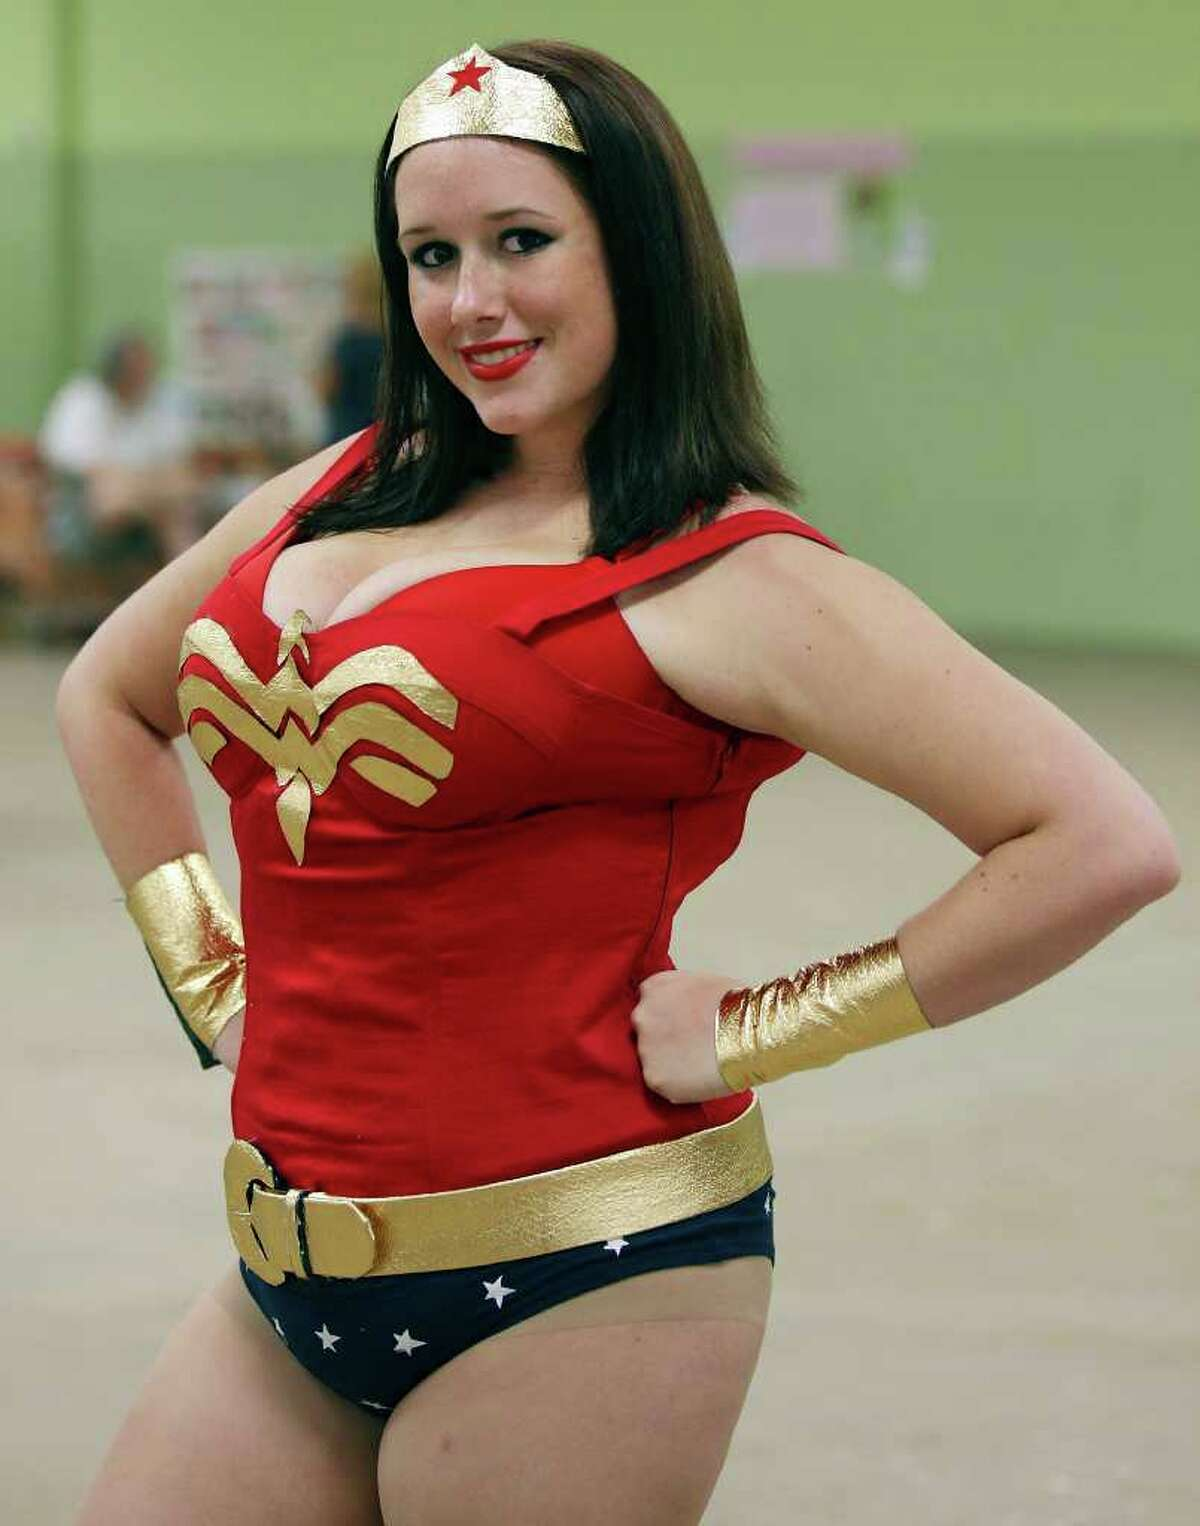 Kelly Kegley, 21, as Wonder Woman poses for a photo.